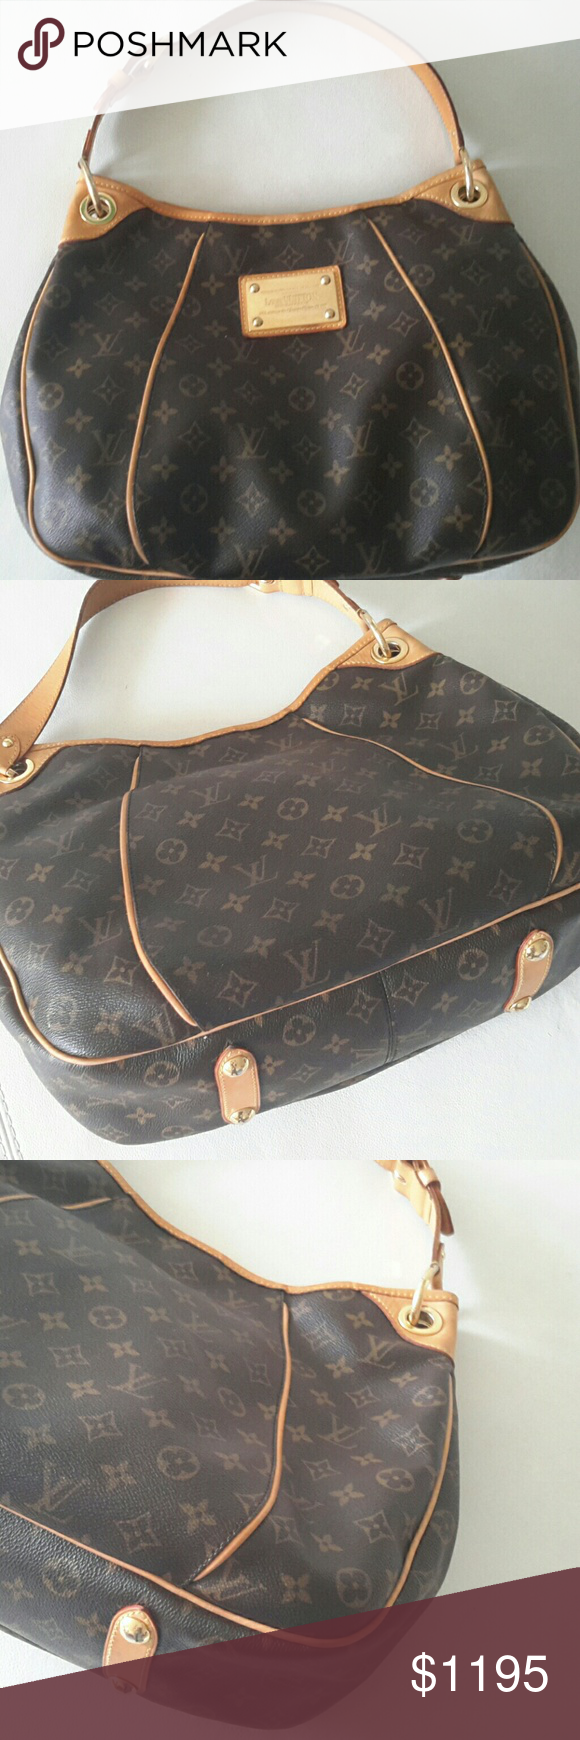 a83ca80720b Louis Vuitton Galleria PM Authentic date code SD1008 imprinted into ...